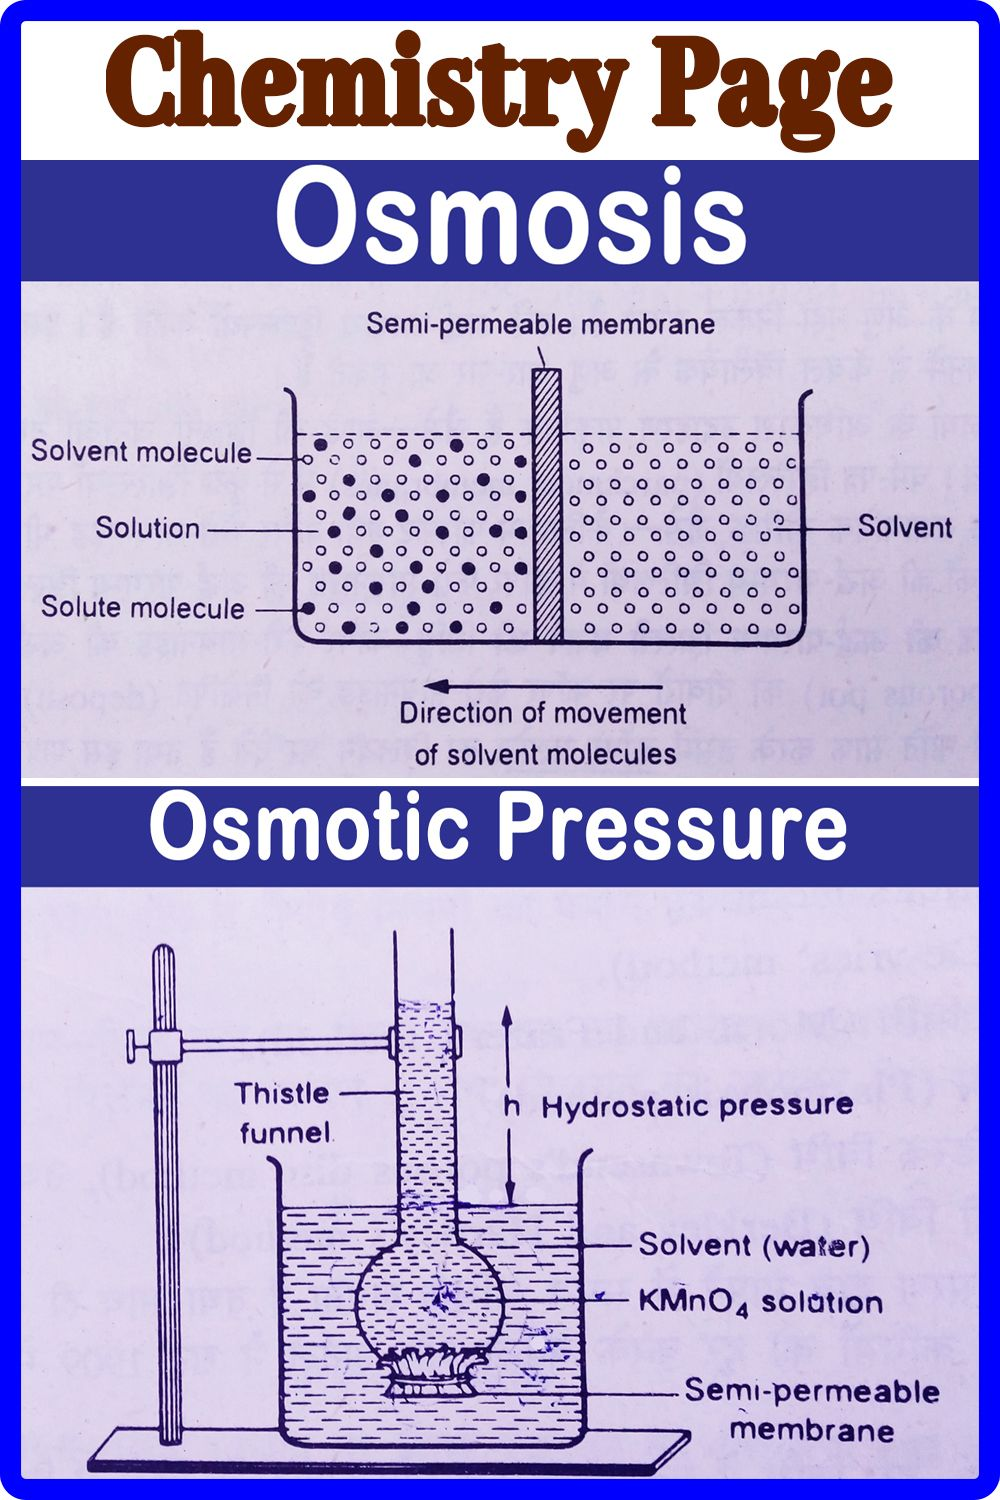 Osmosis and Osmotic Pressure in 2021 | Osmotic pressure, Osmosis, Chemistry  notes